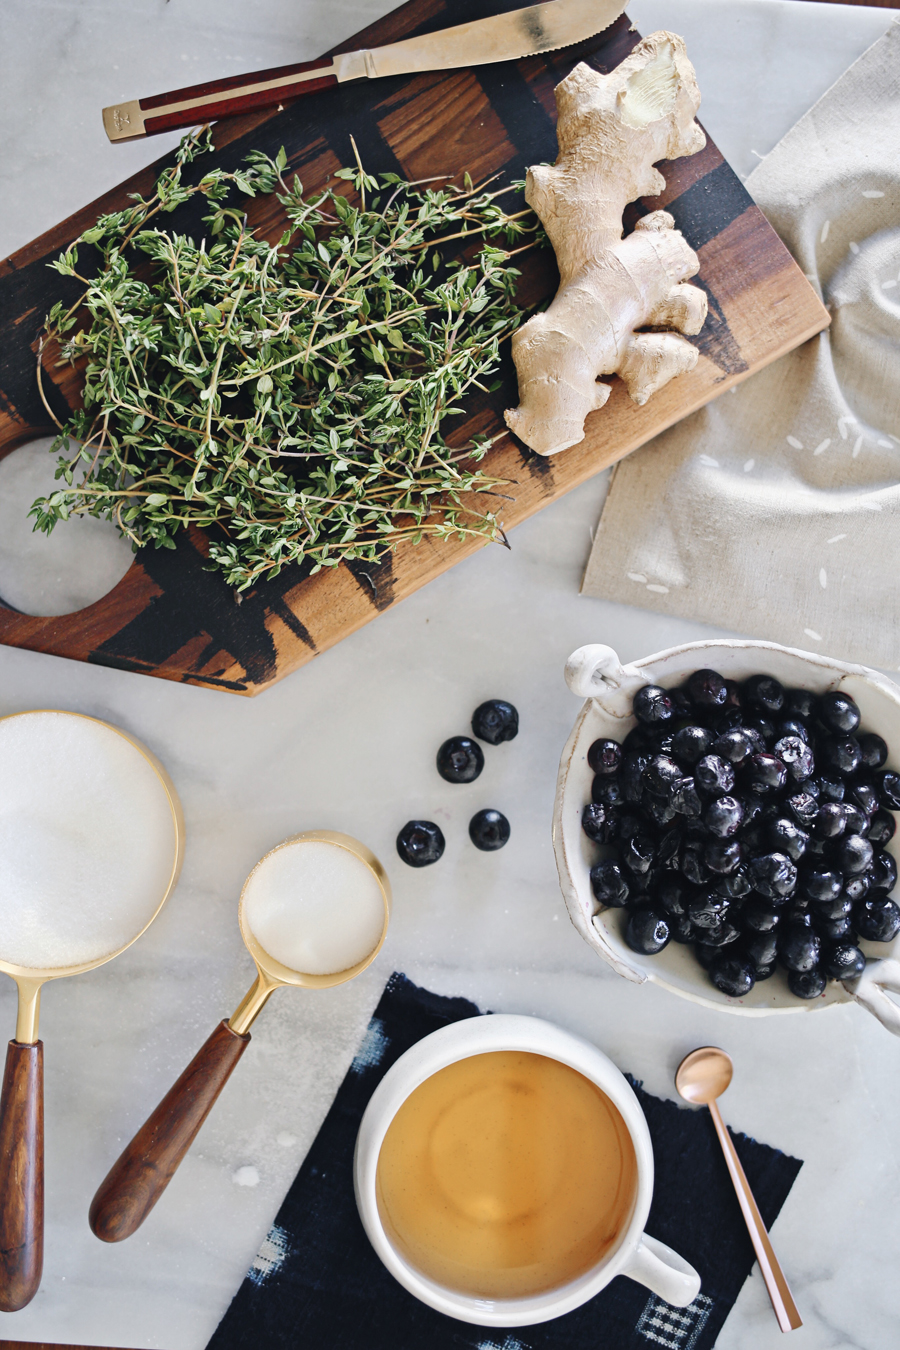 Blueberry Shrub Ingredients | Dine X Design